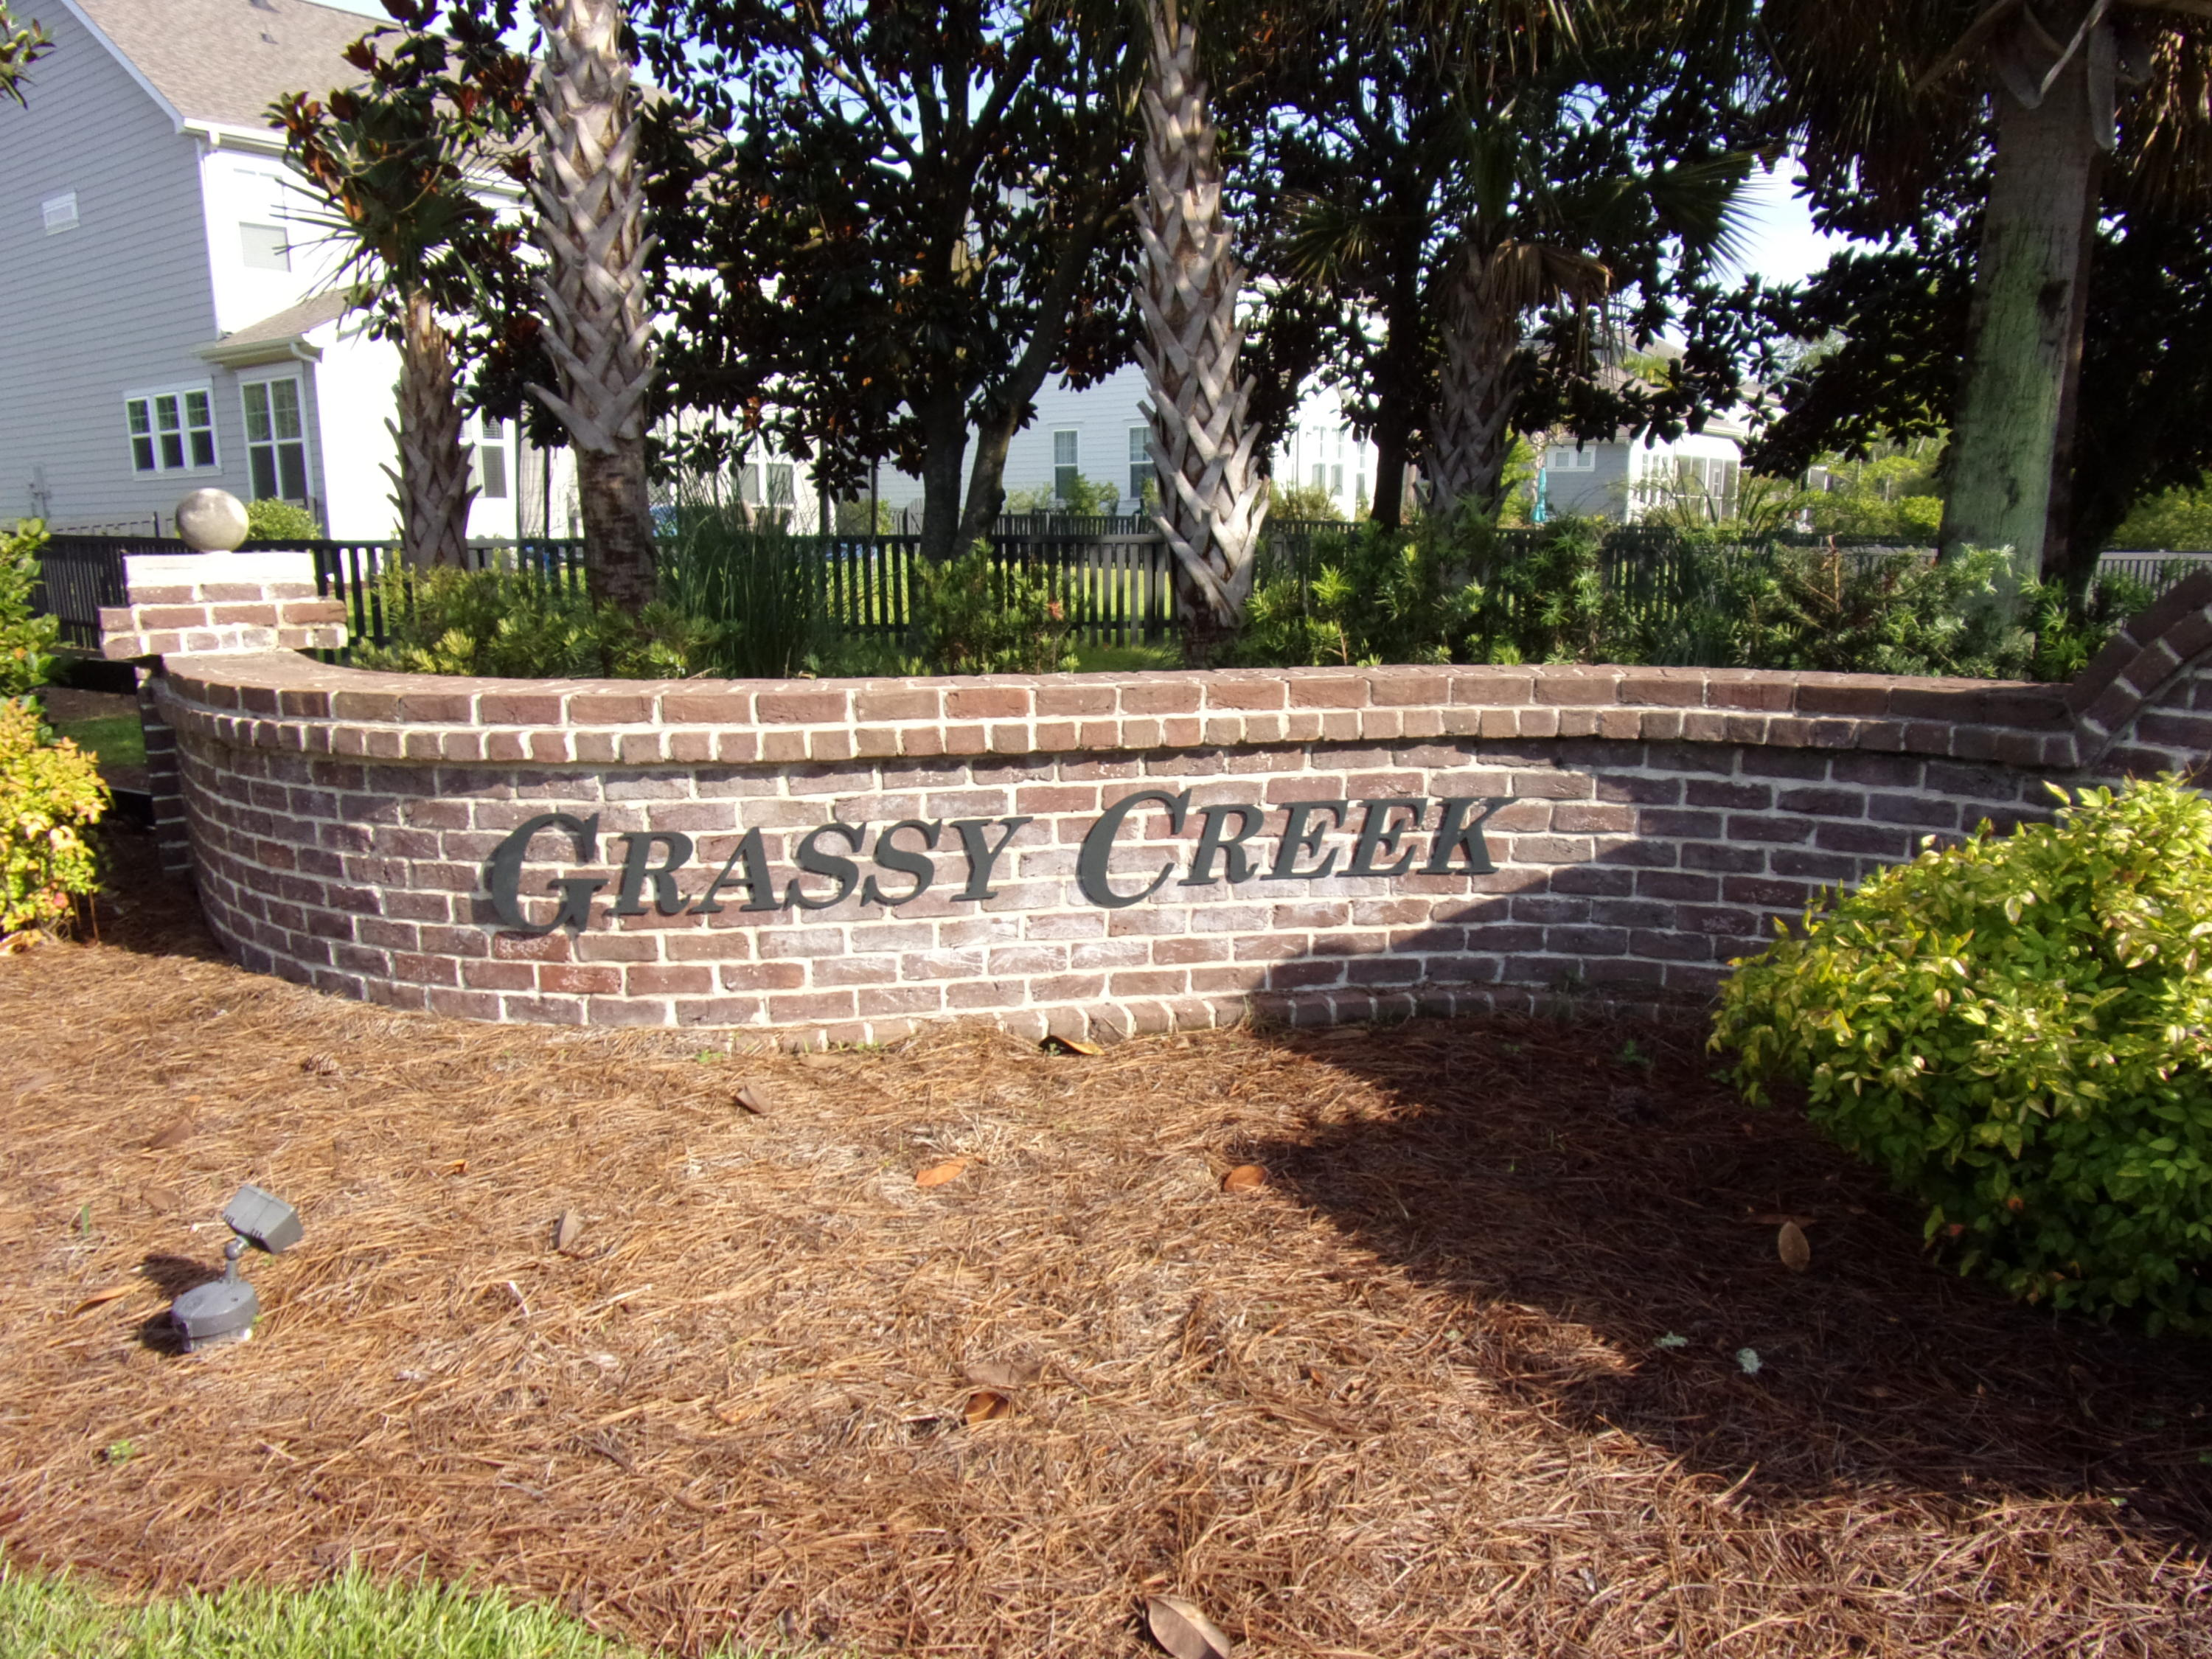 Grassy Creek Homes For Sale - 352 Tidal Place, Mount Pleasant, SC - 6